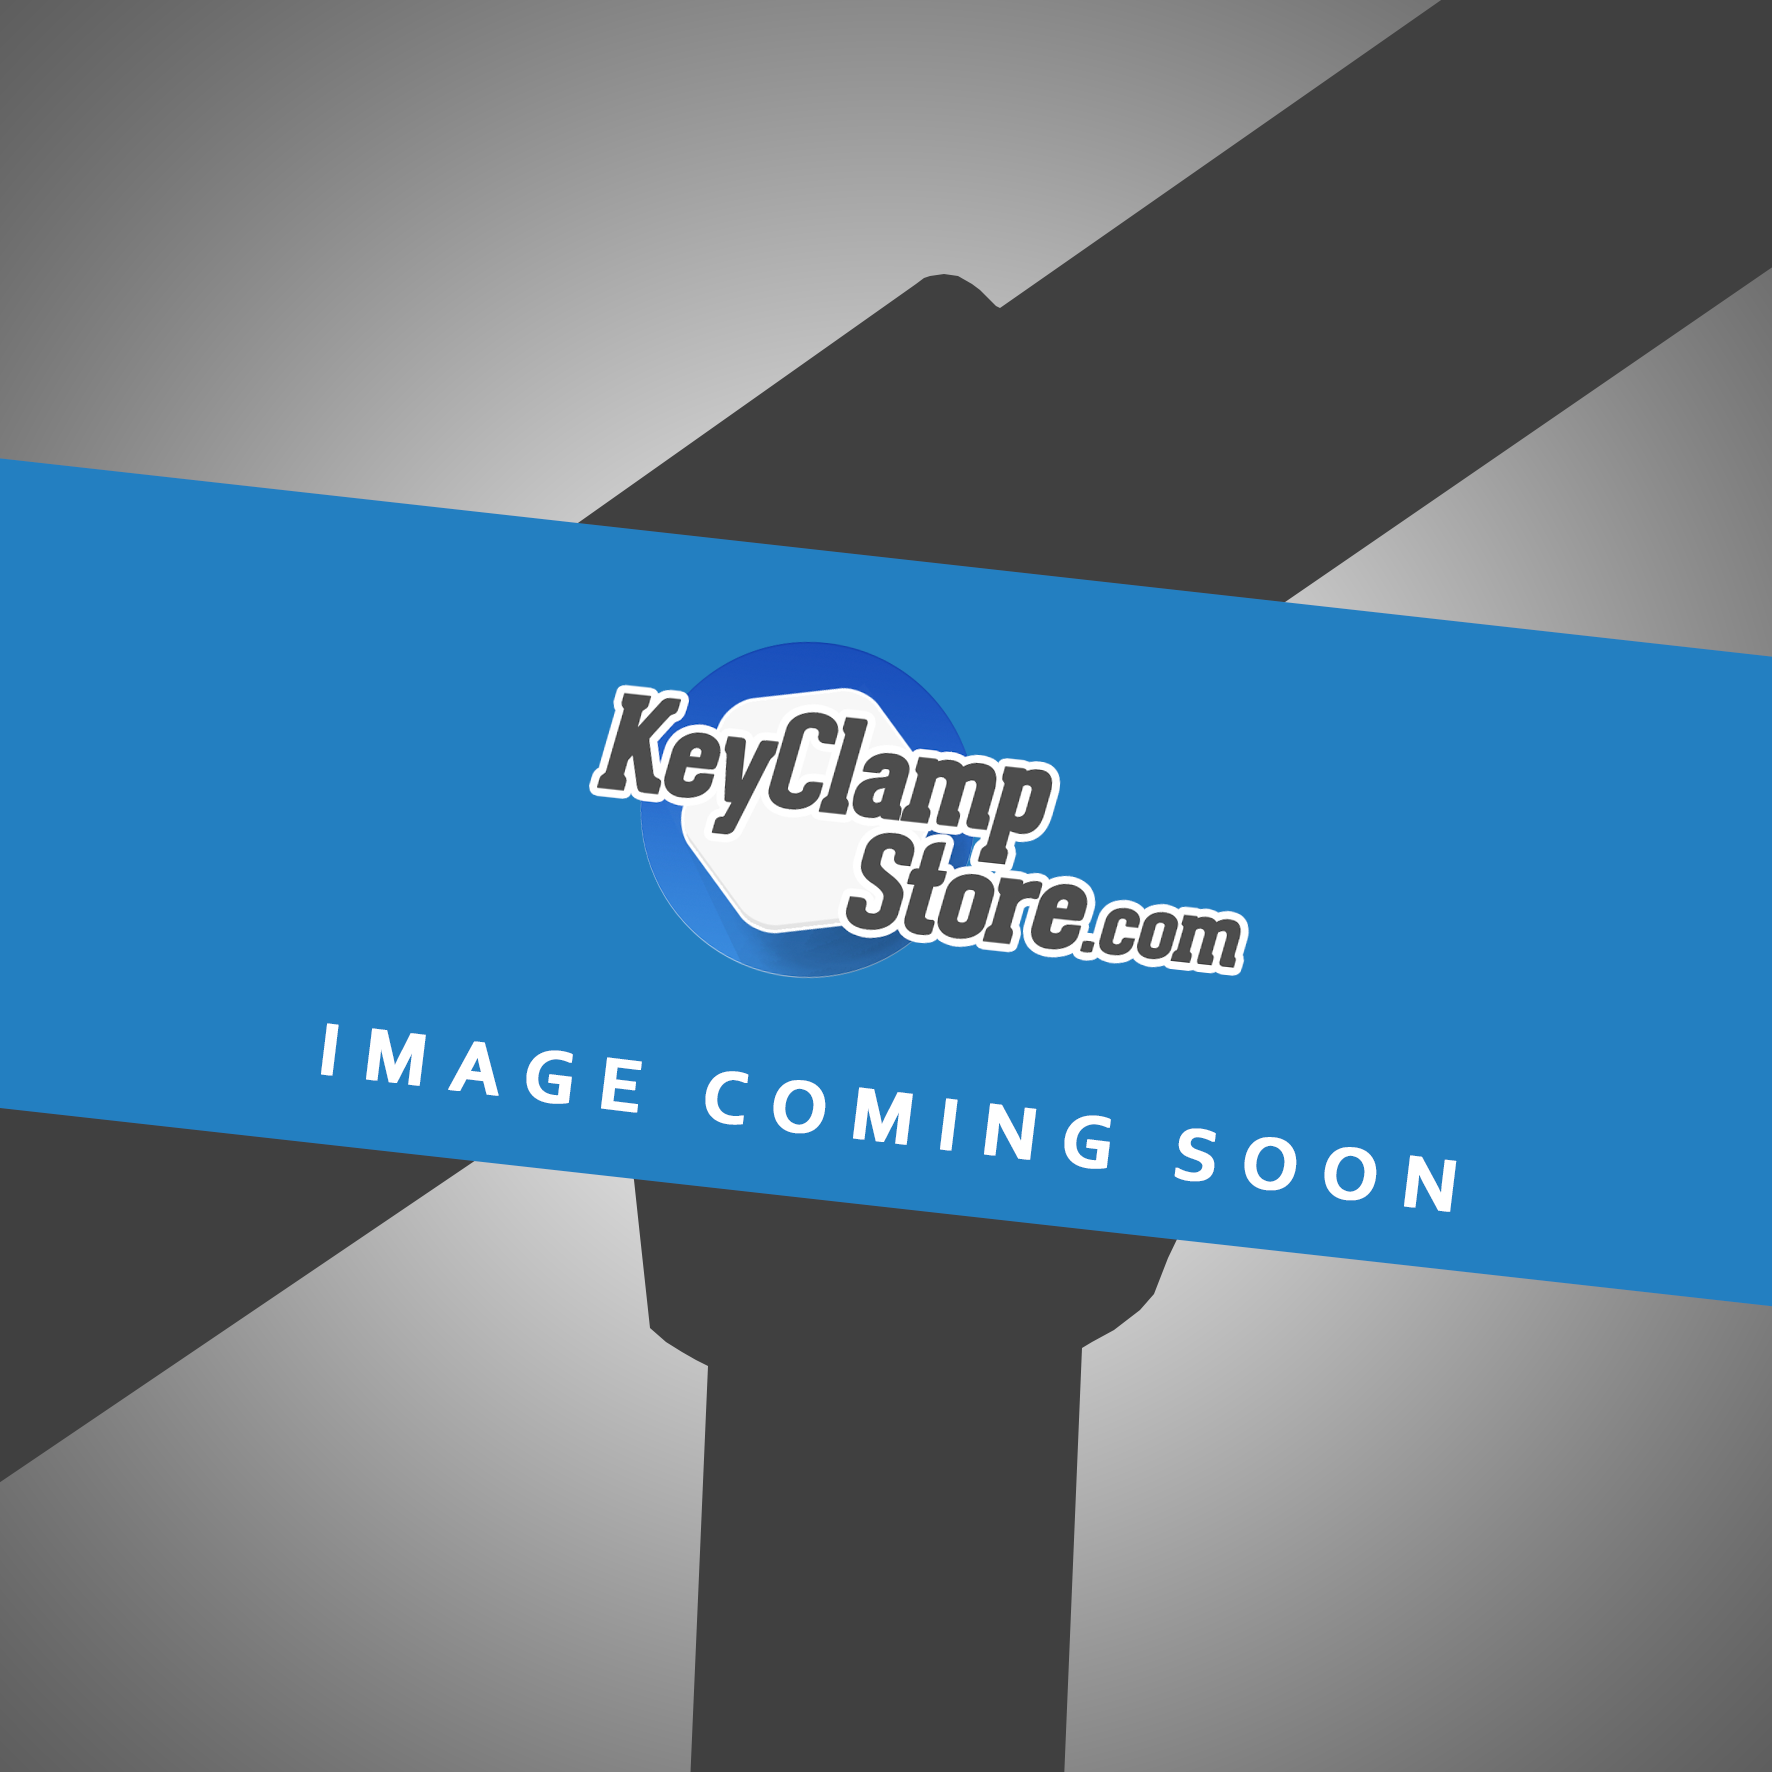 Kee Klamp Barrier Kit - Comes with Allen Key and Floor Bolts